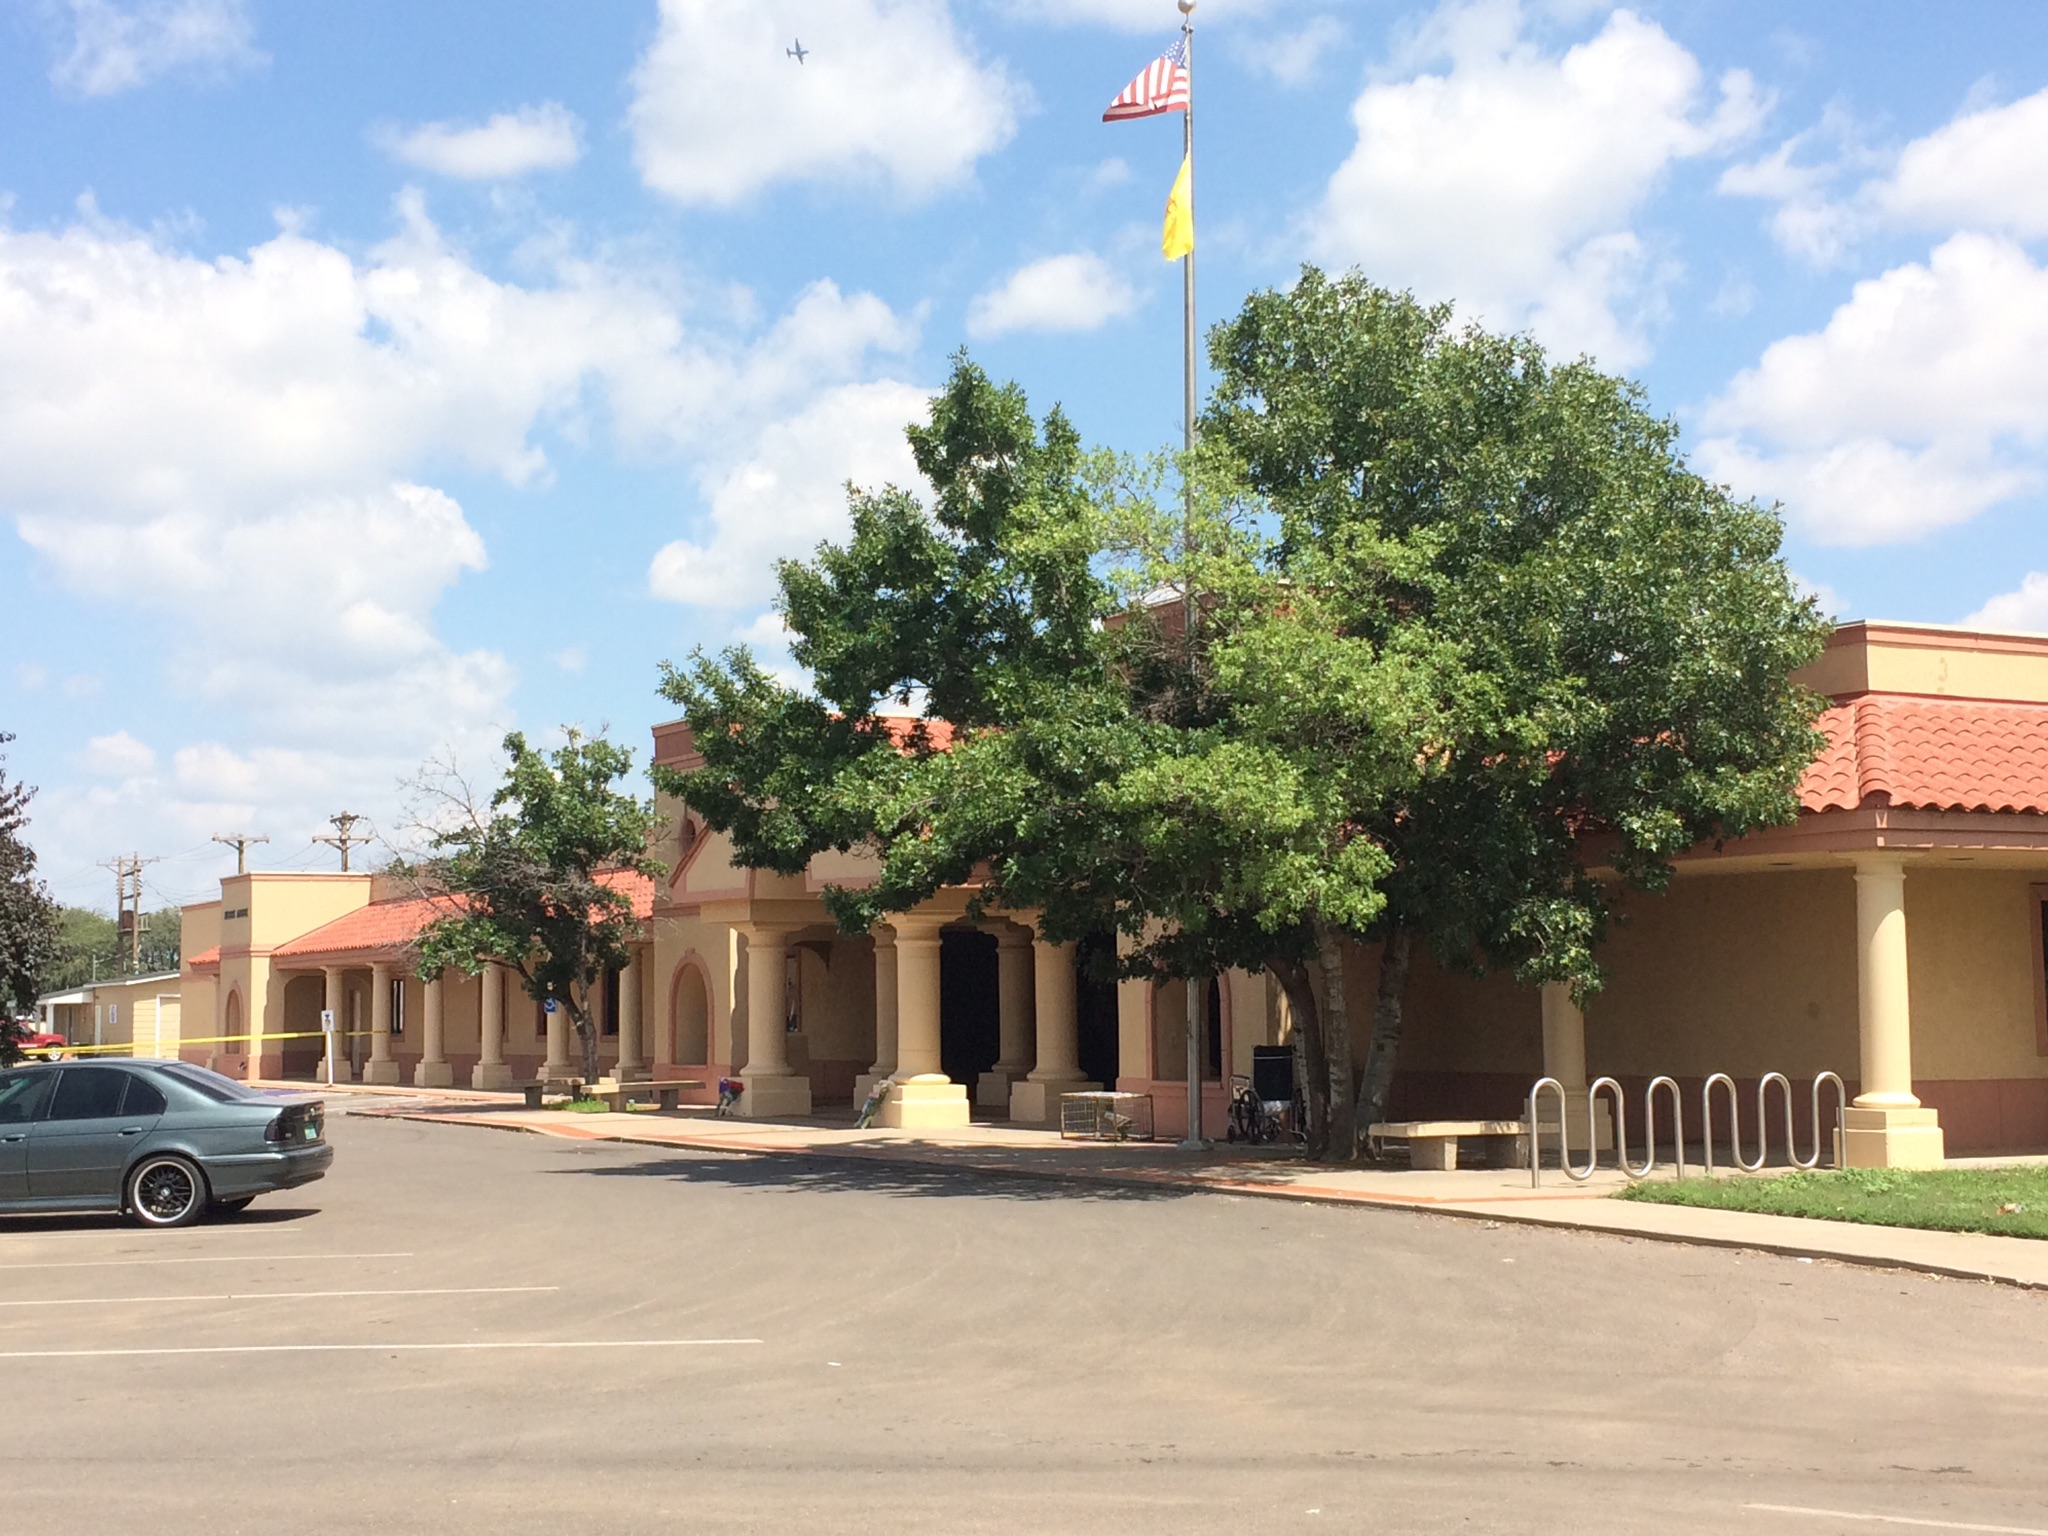 61-year-old Wanda Walters and 48-year-old Krissie Carter died after being shot during an incident at Clovis-Carver Public Library.(KVII)